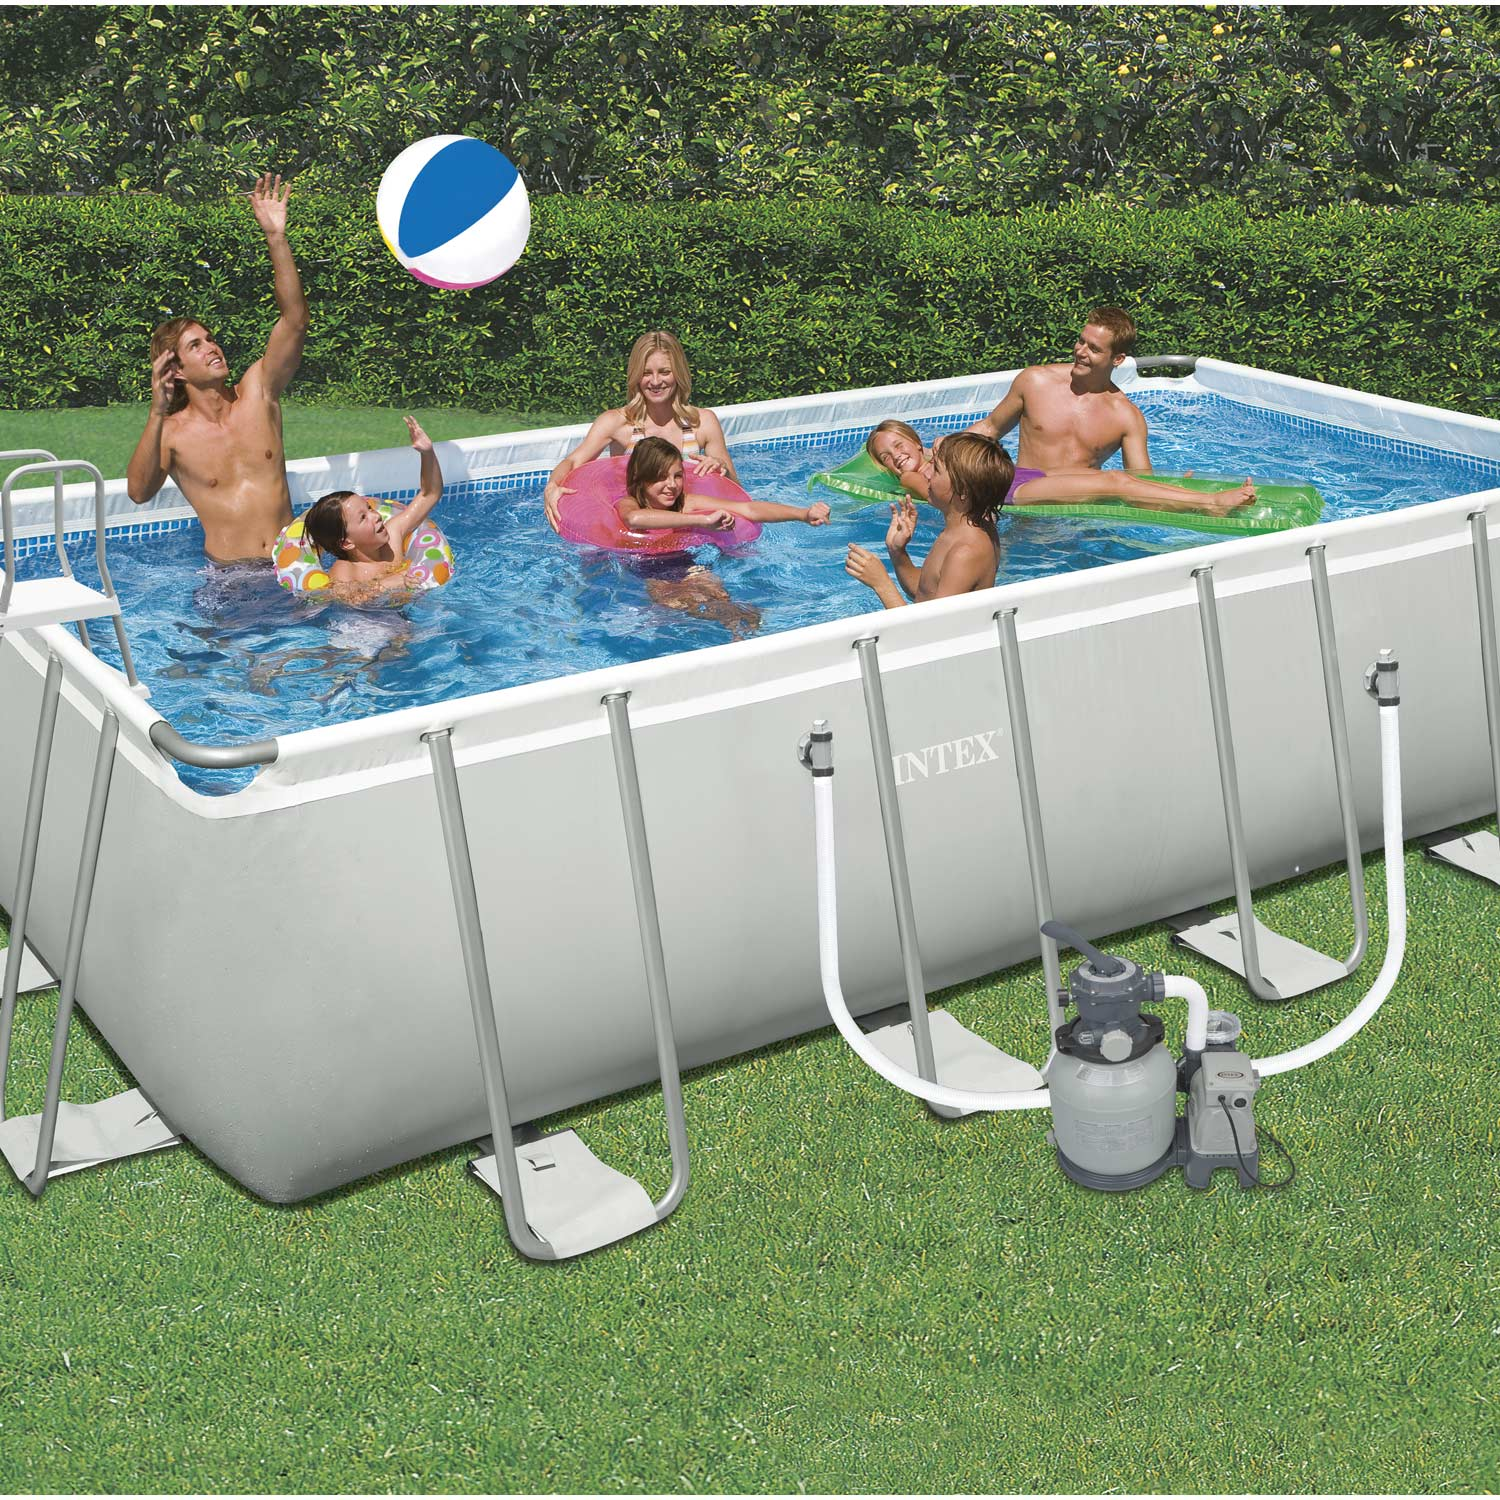 Piscine hors sol autoportante tubulaire intex l x l for Securiser piscine hors sol